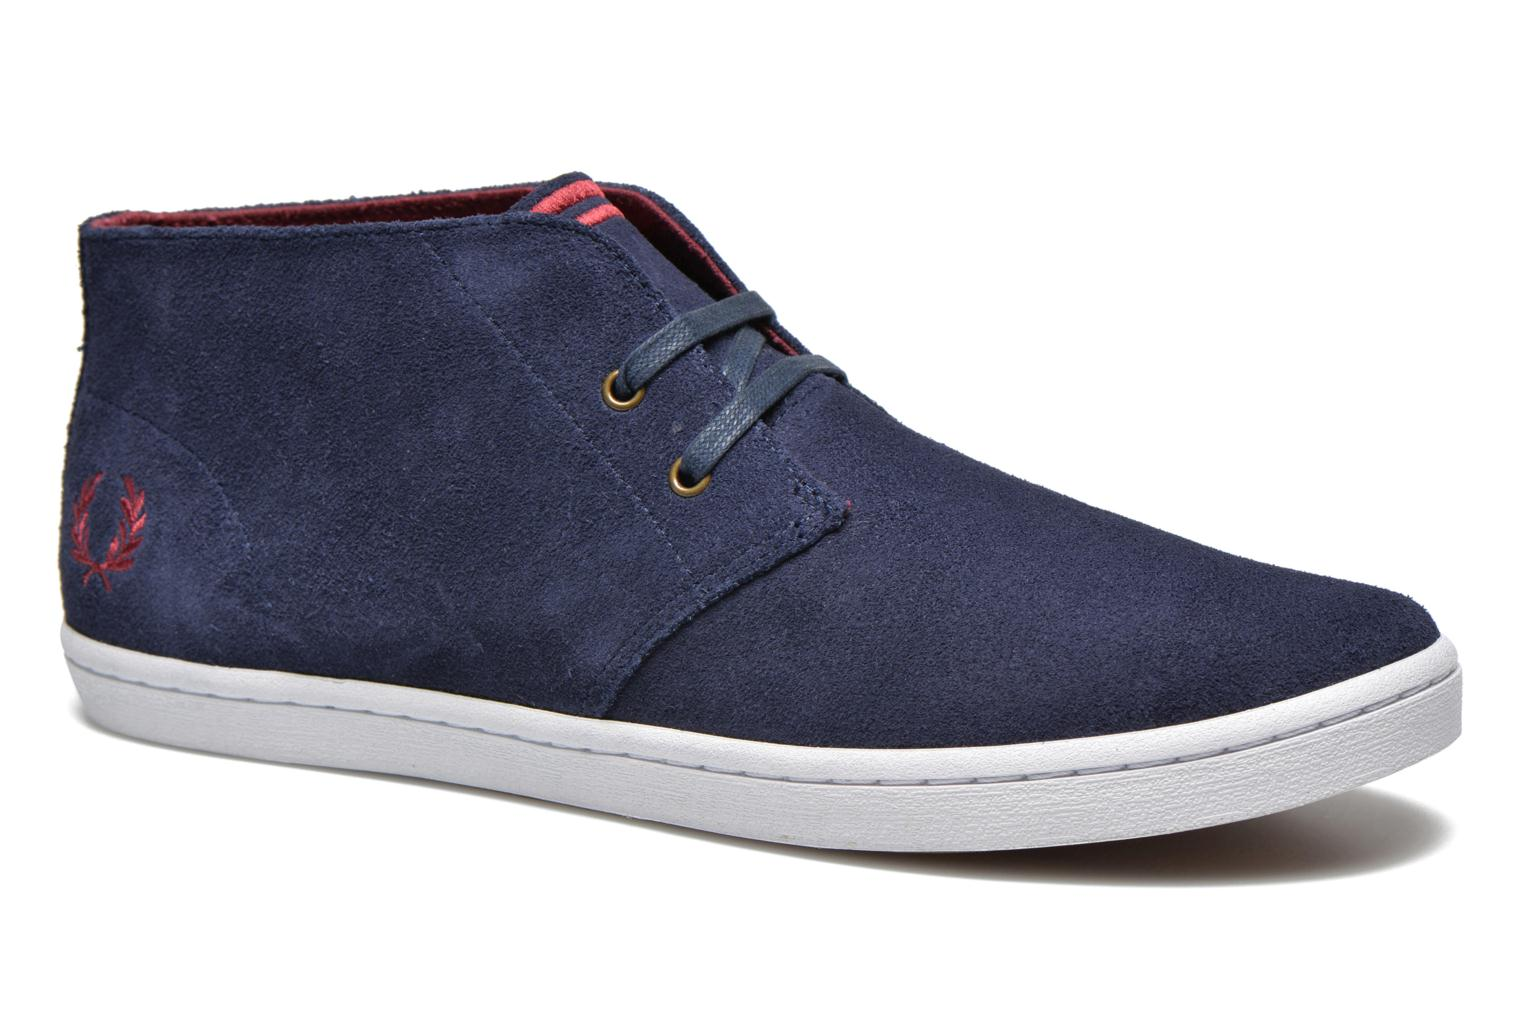 Fred Perry Byron Mid Suede (Bleu) - Baskets en Más cómodo Chaussures casual sauvages